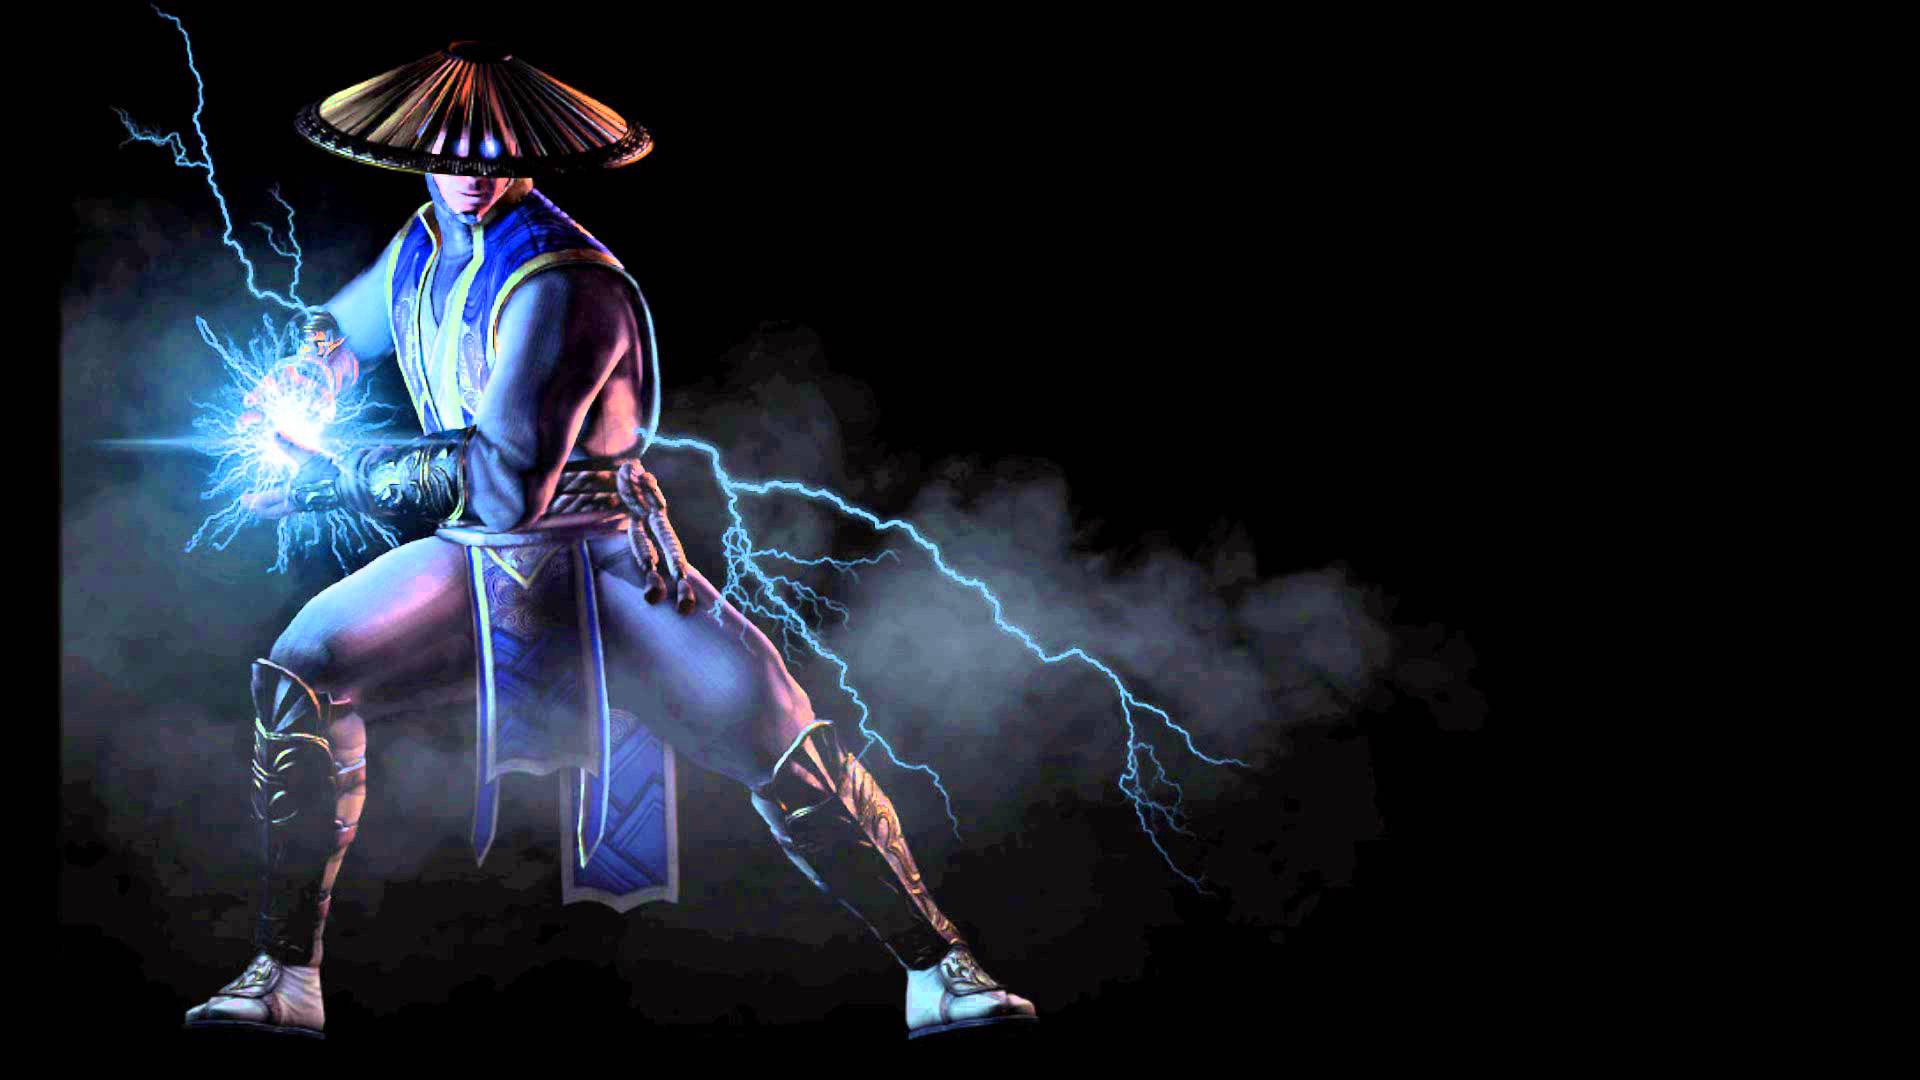 47] MKX Raiden Wallpaper on WallpaperSafari 1920x1080